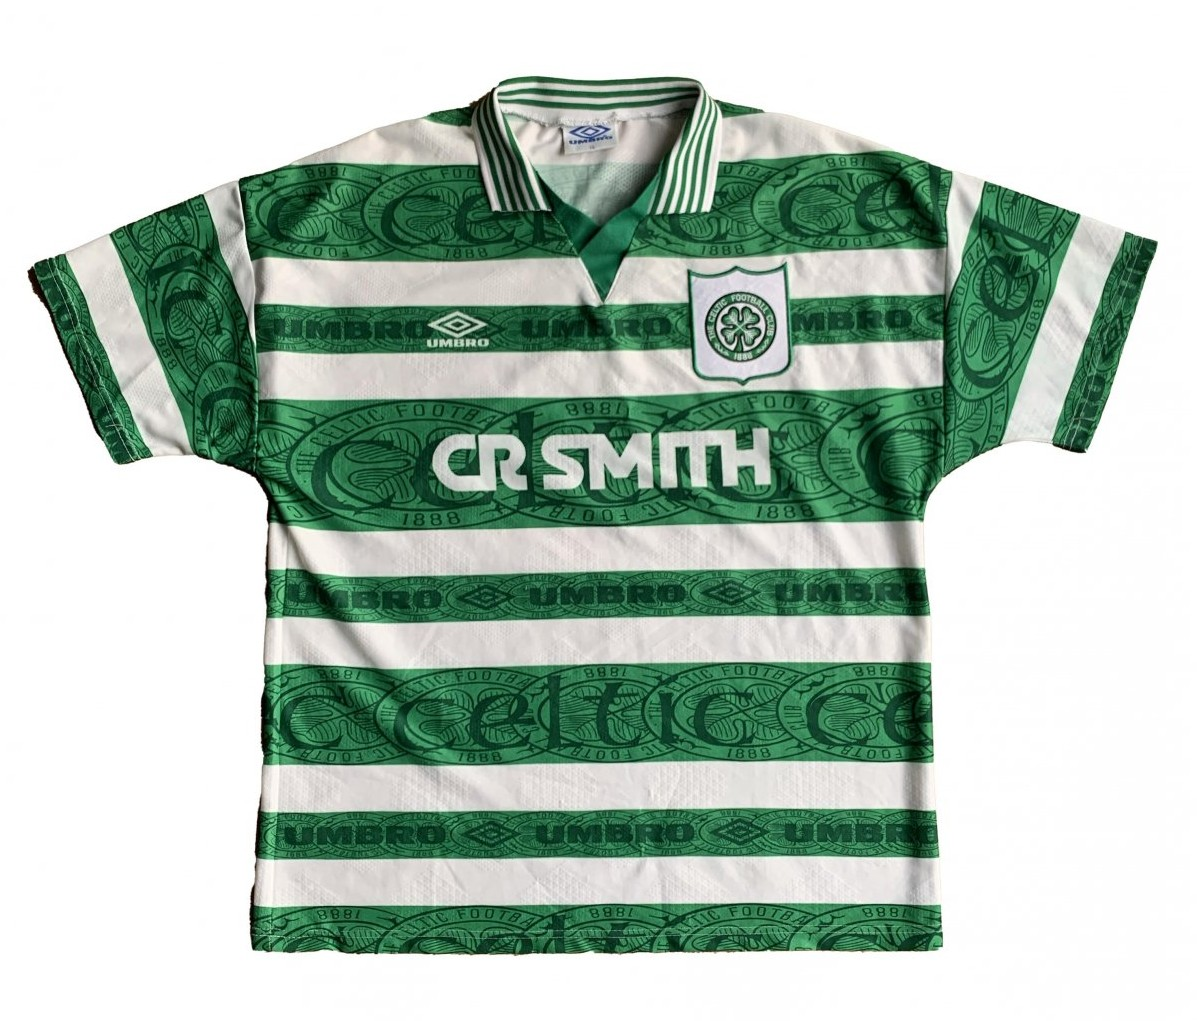 celtic-home-football-shirt-1995-1997-s_1634_1.jpg